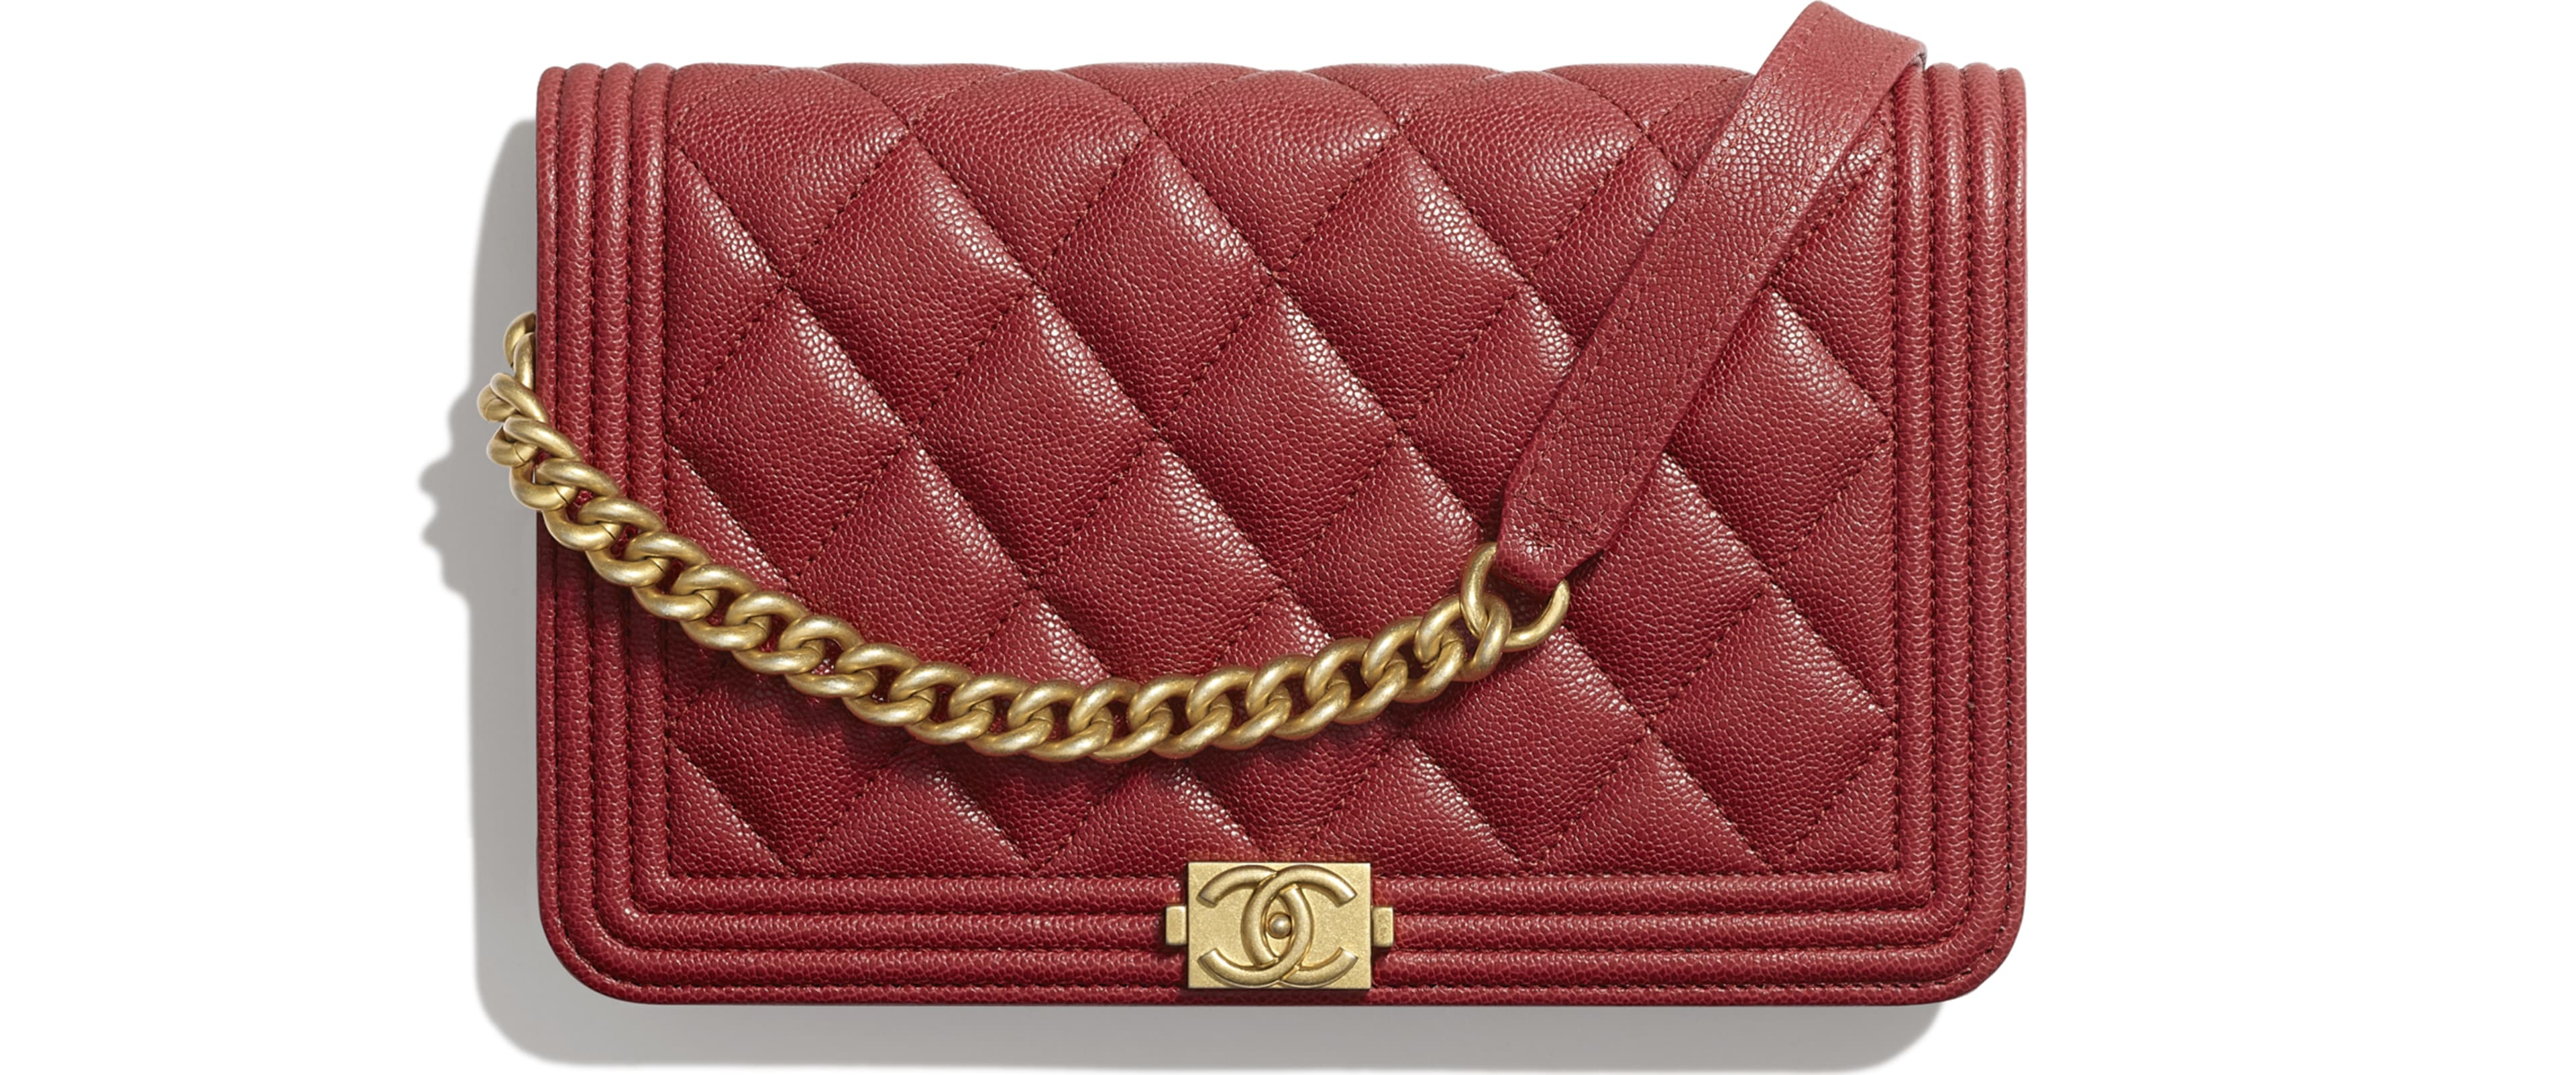 Grained Calfskin & Gold-Tone Metal Red